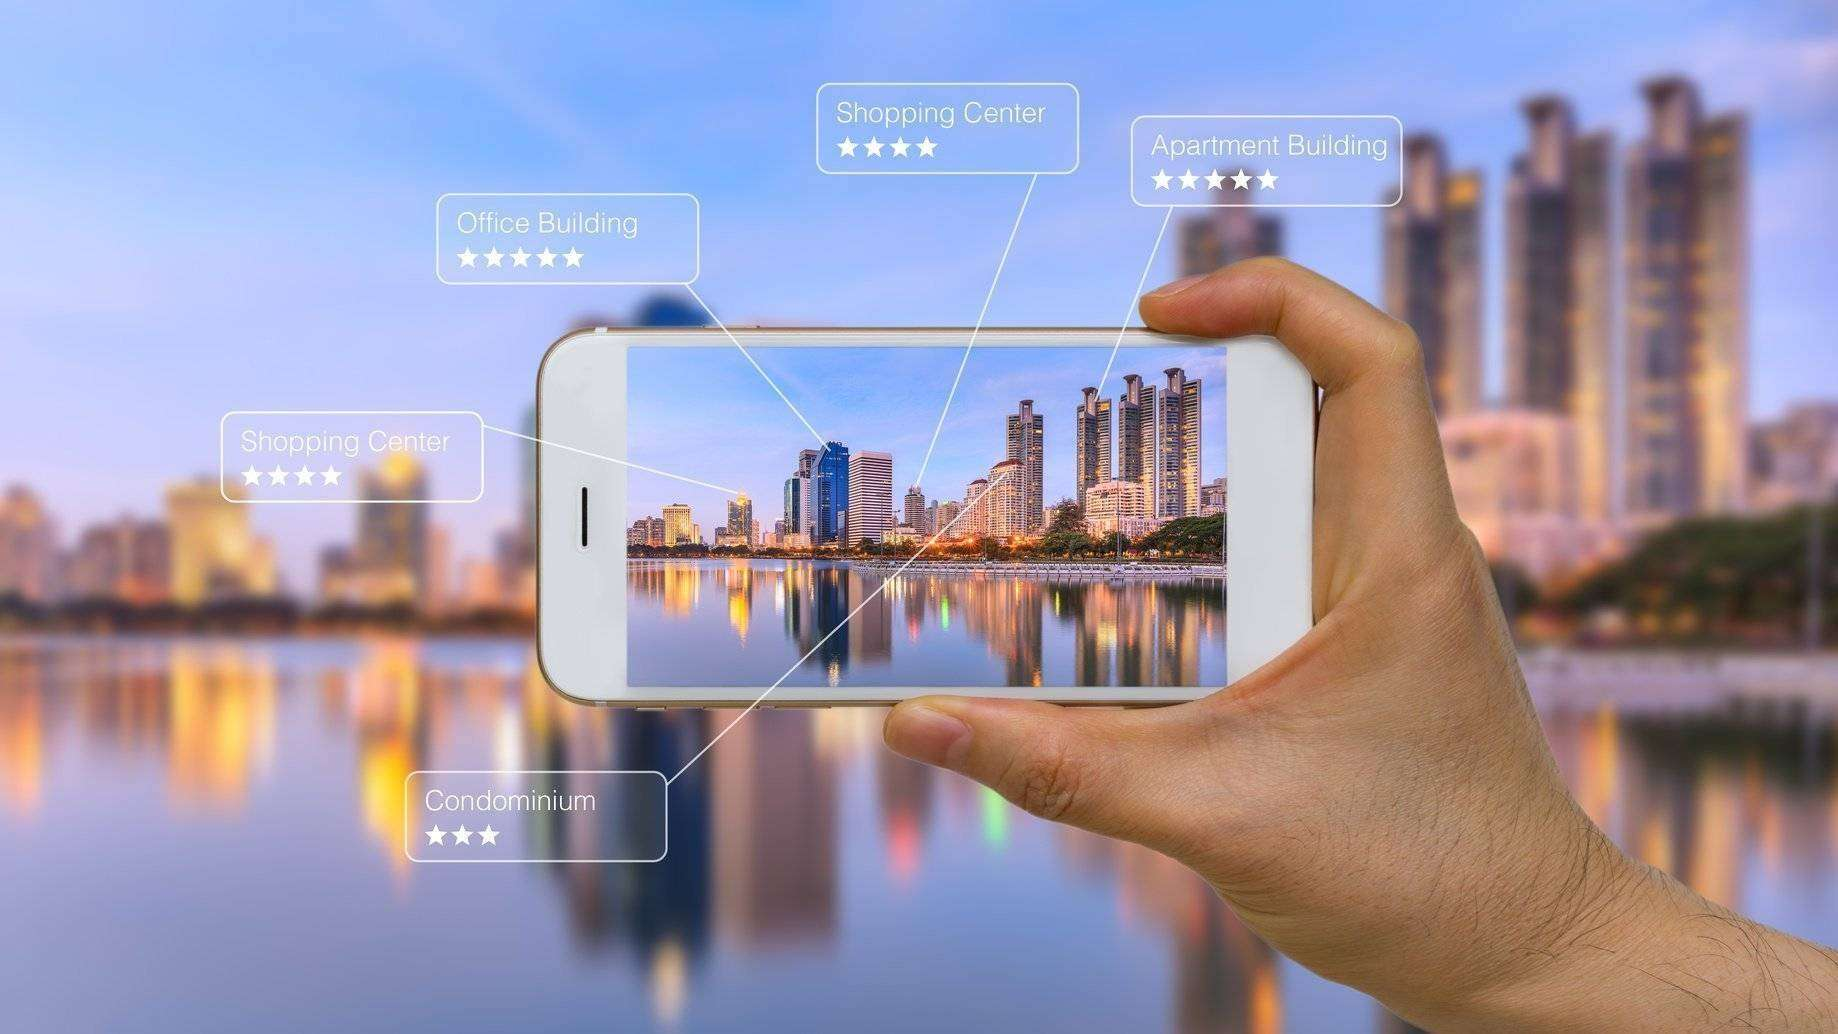 Augmented Reality and customer experience